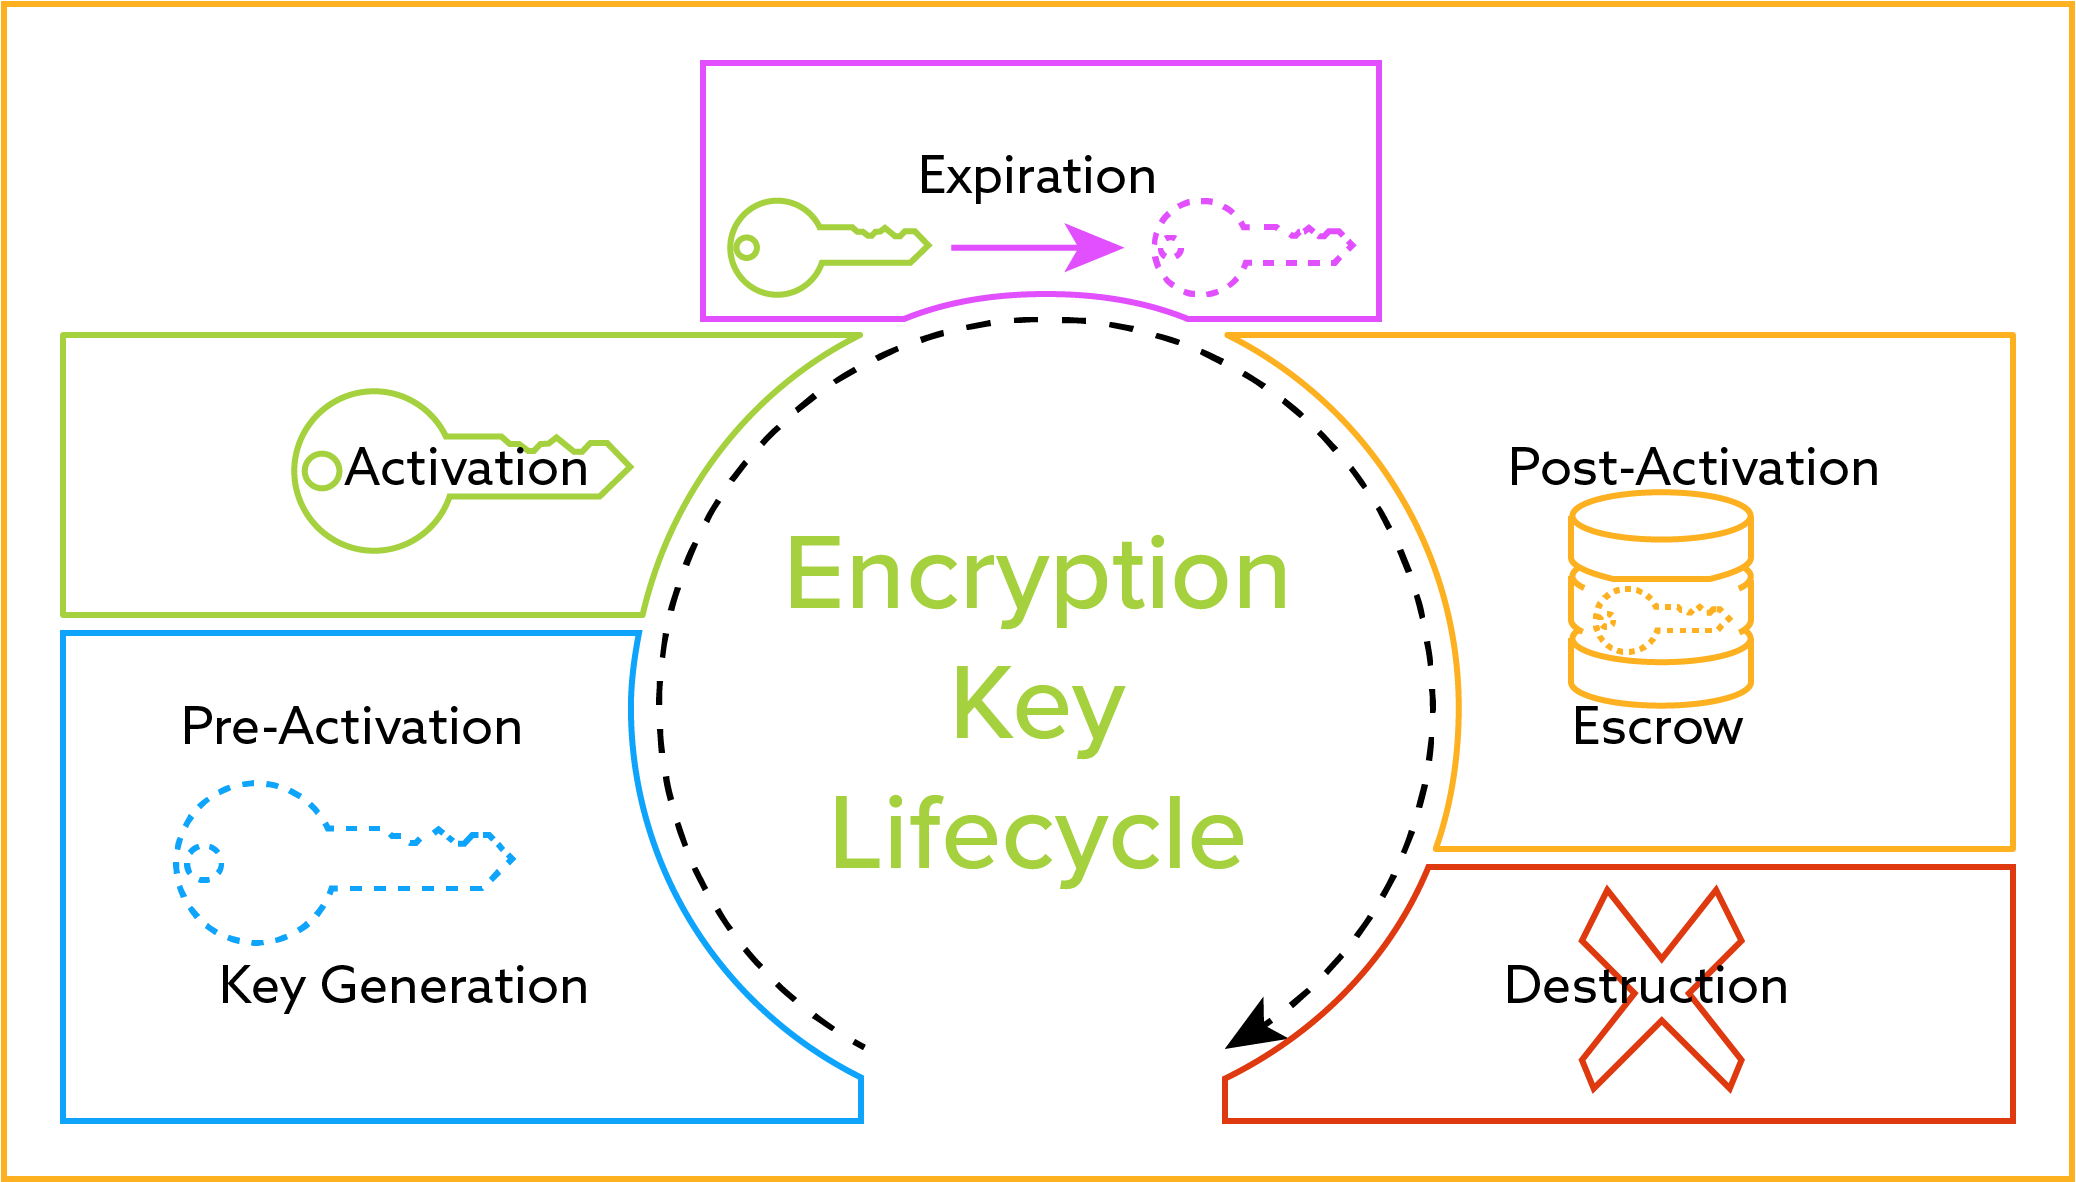 Encryption Key Lifecycle.png